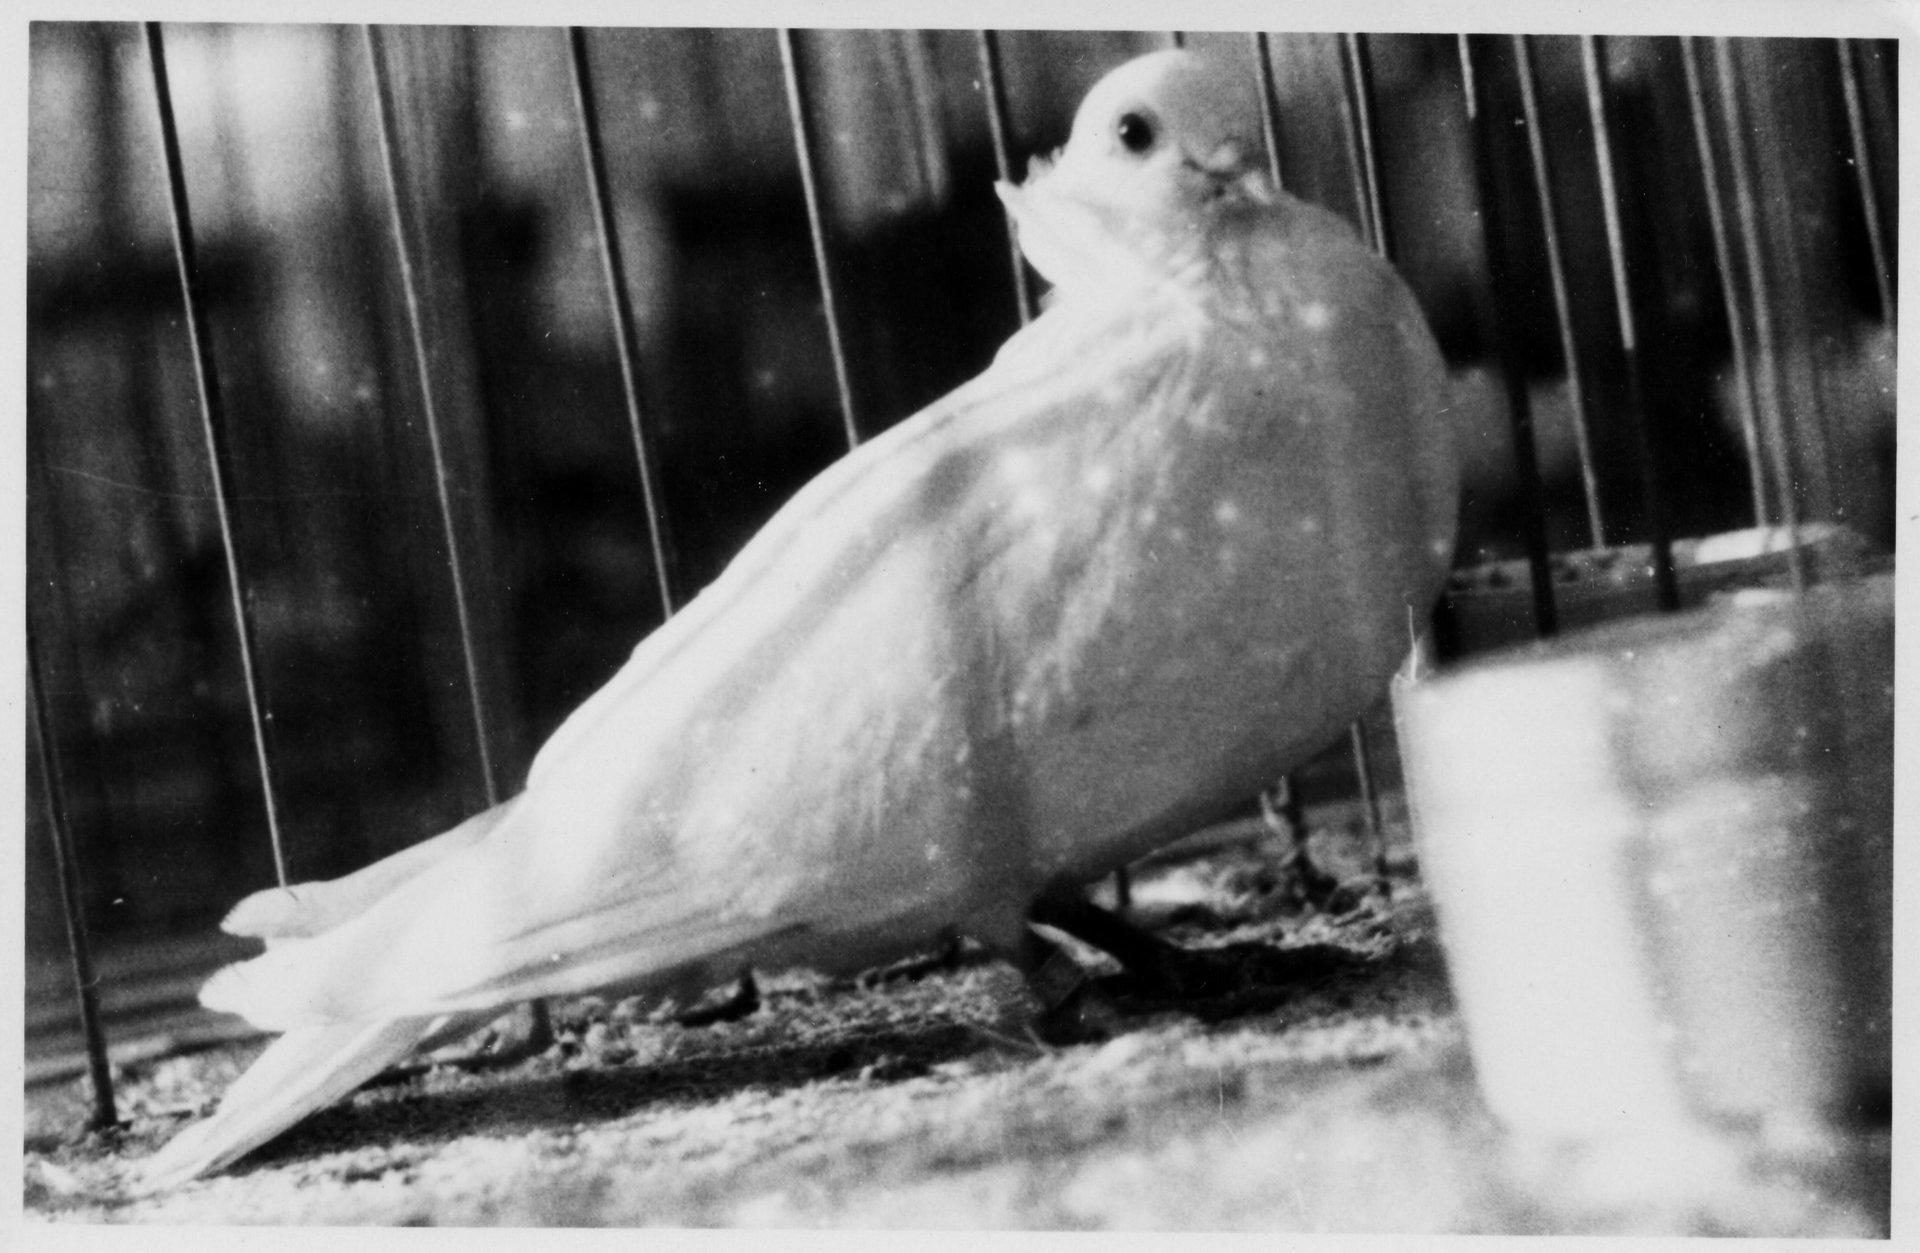 Petra Feriancová, Series Creator – From the Archive of O. Ferianc, New Breeds 1949-1952, 2008, (41/112)